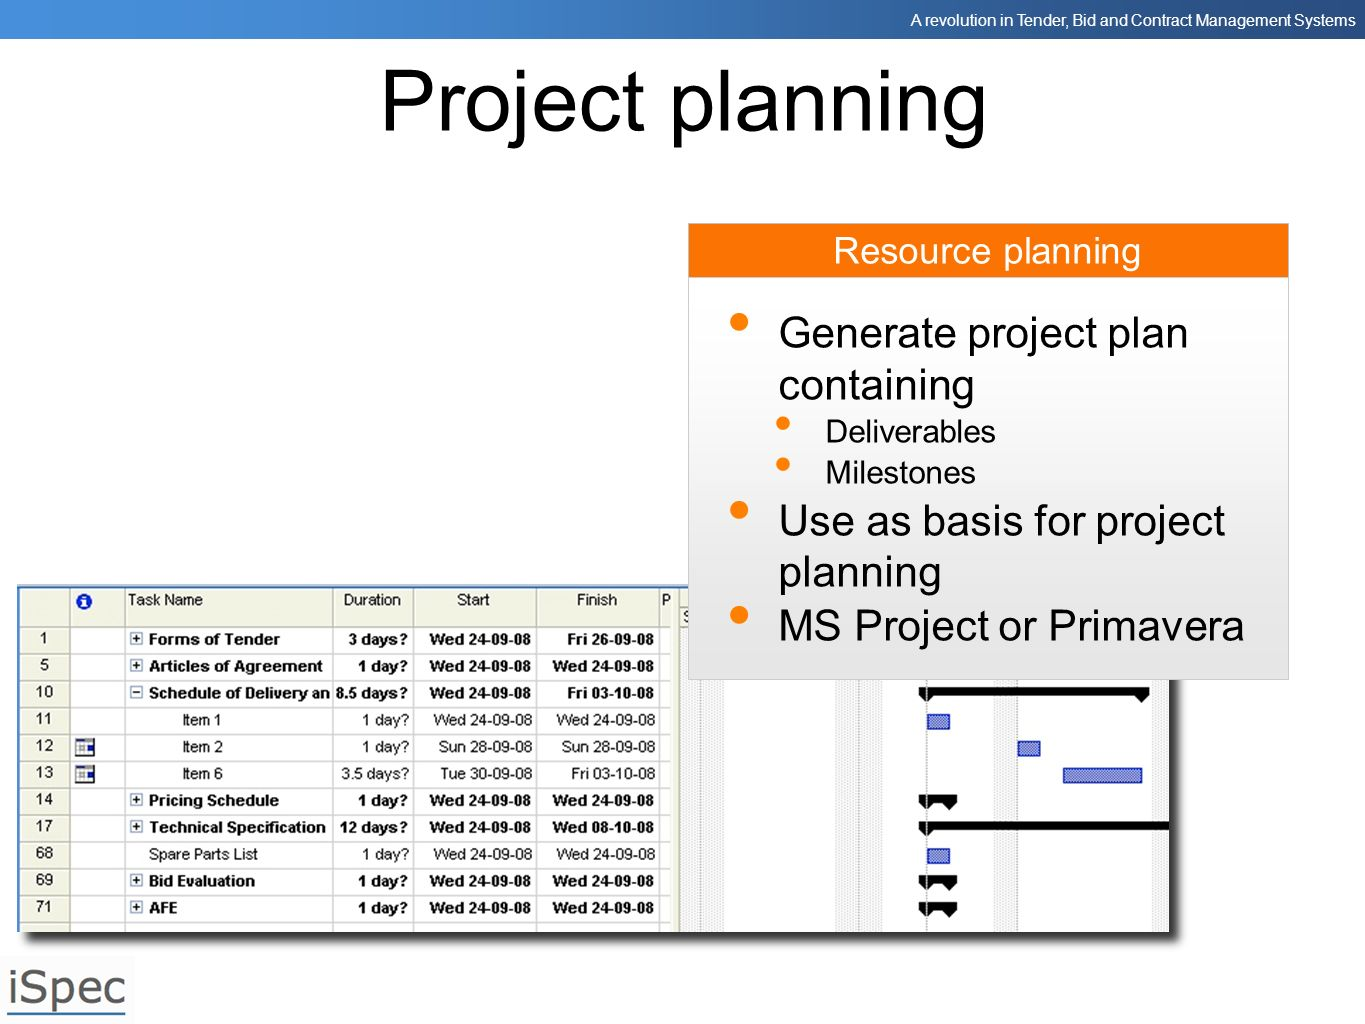 Project planning Generate project plan containing